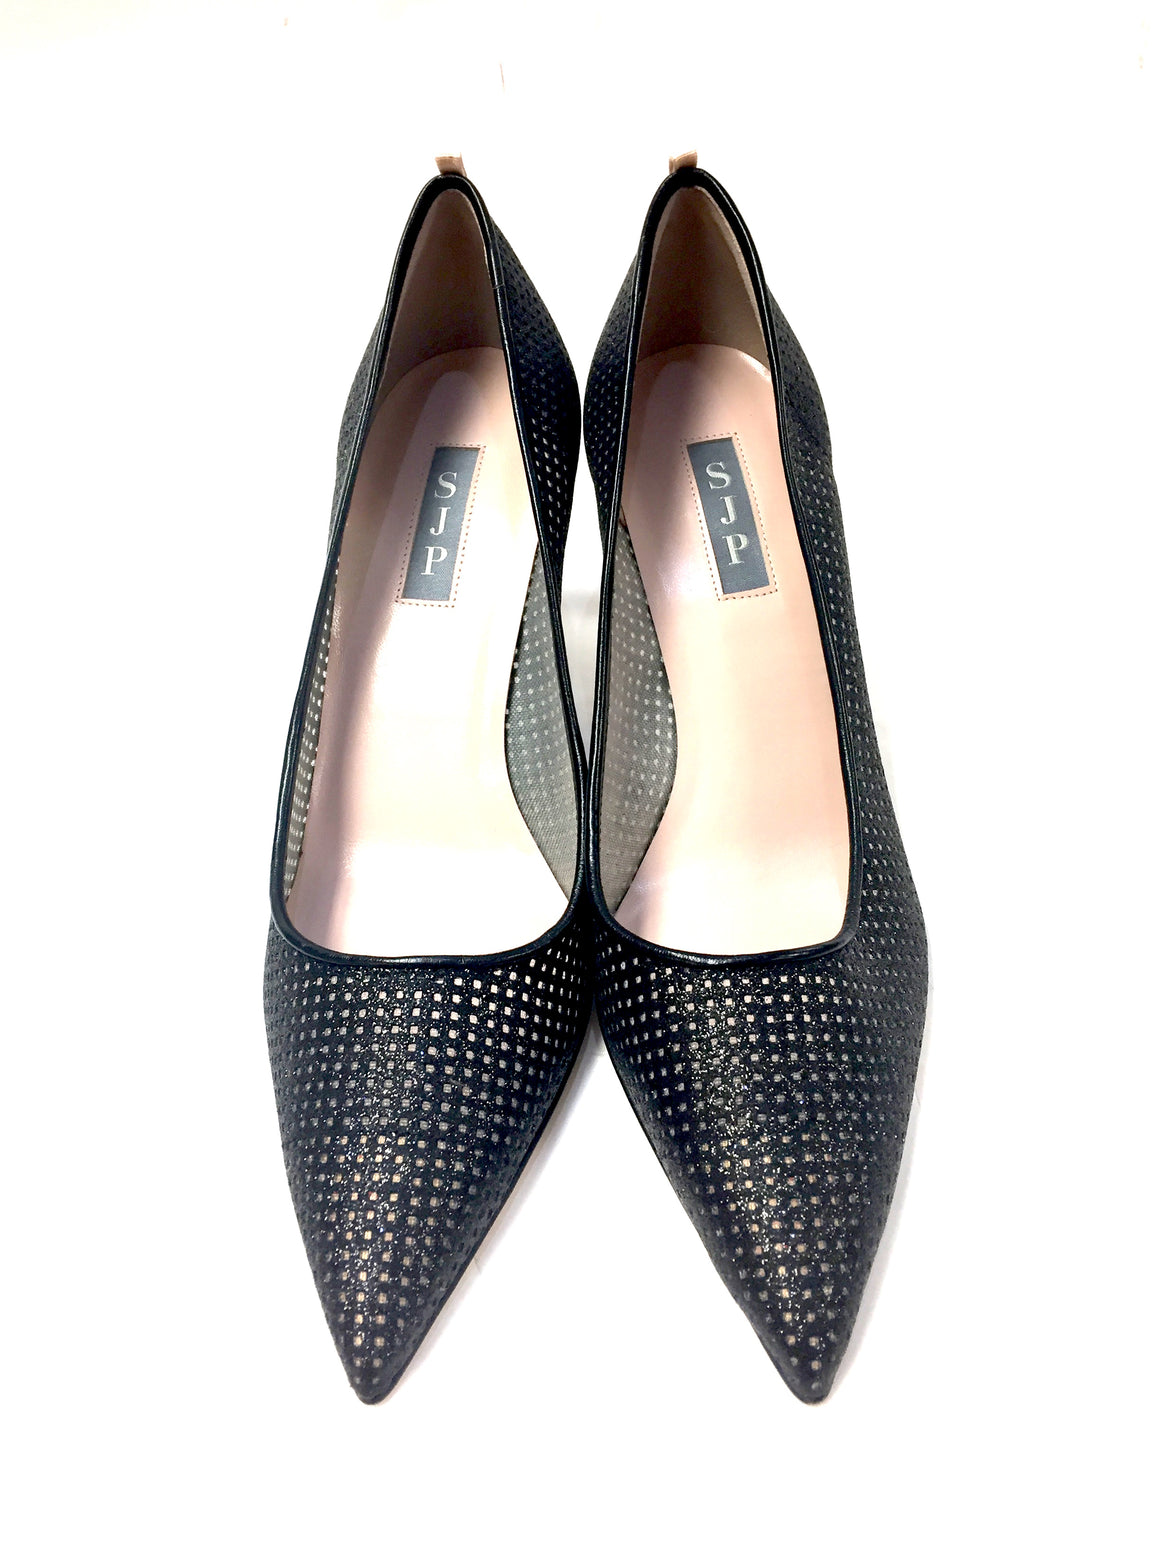 SARAH JESSICA PARKER - SJP New Black Fishnet Pointed Toe Hi-Heel Pumps Shoes Size: EU40 / US 9.5